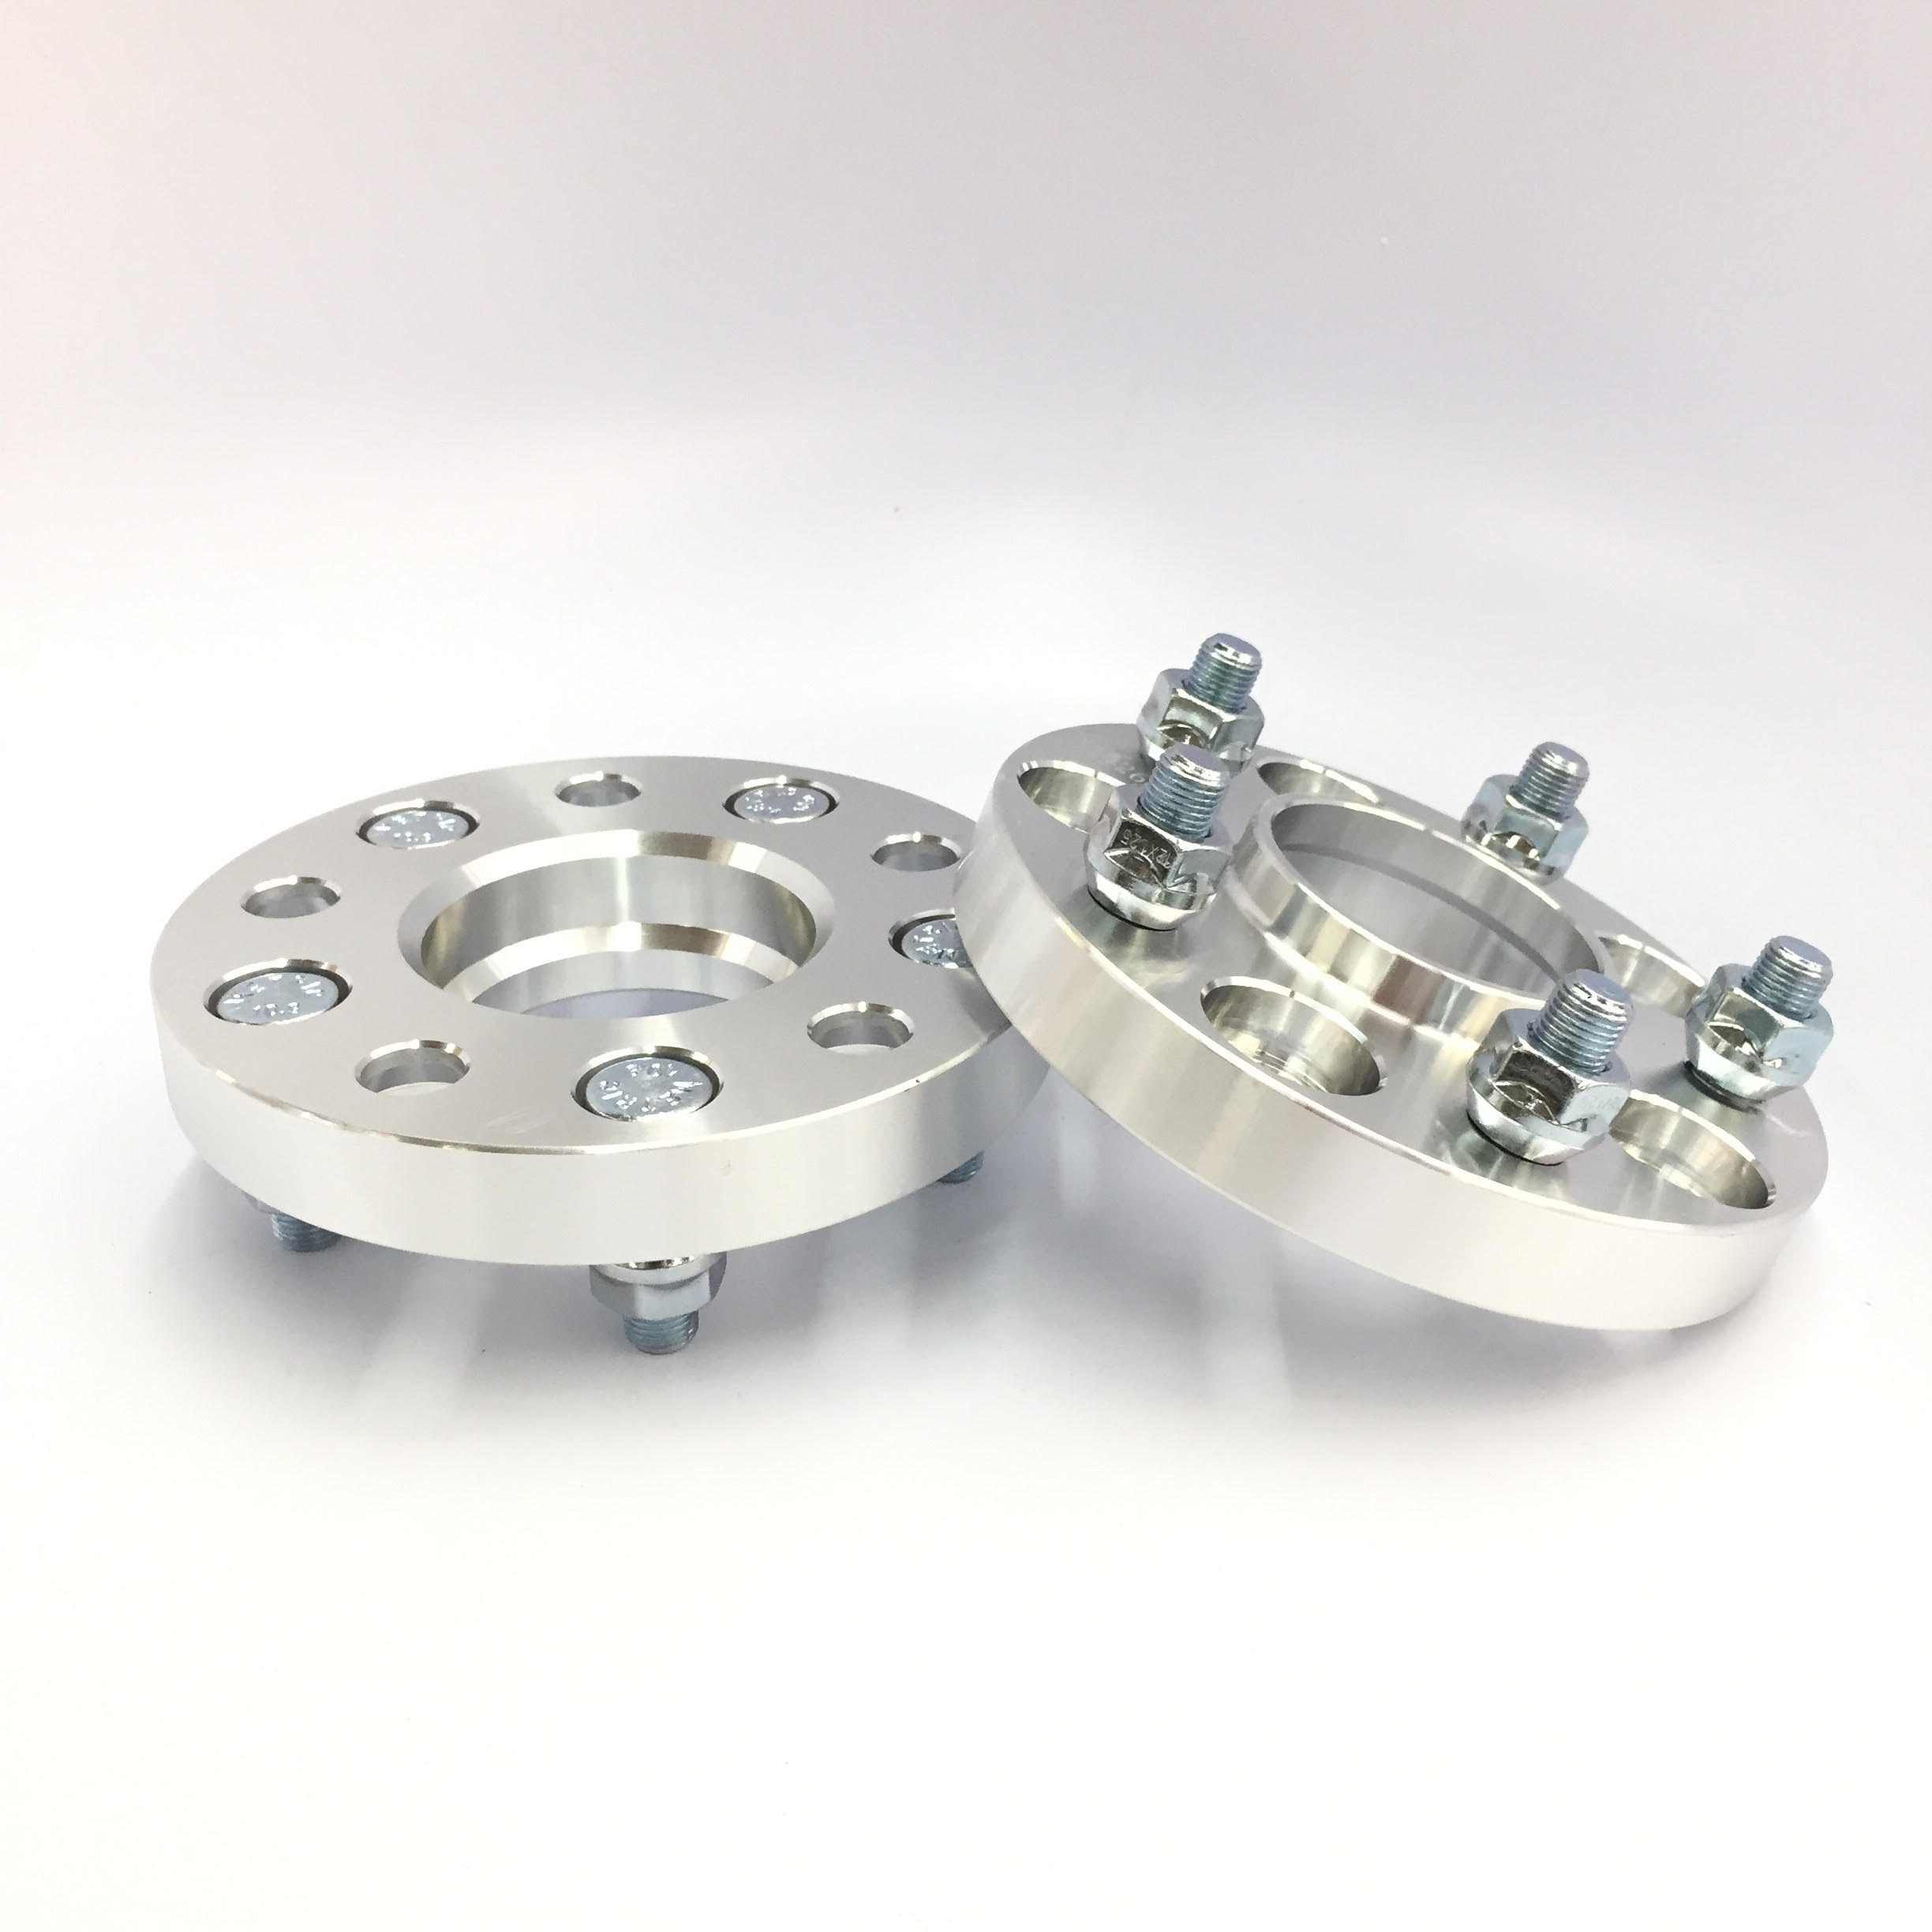 (2) HUBCENTRIC 5X100 TO 5X114.3 56.1 CB WHEEL ADAPTERS 30MM SPACERS